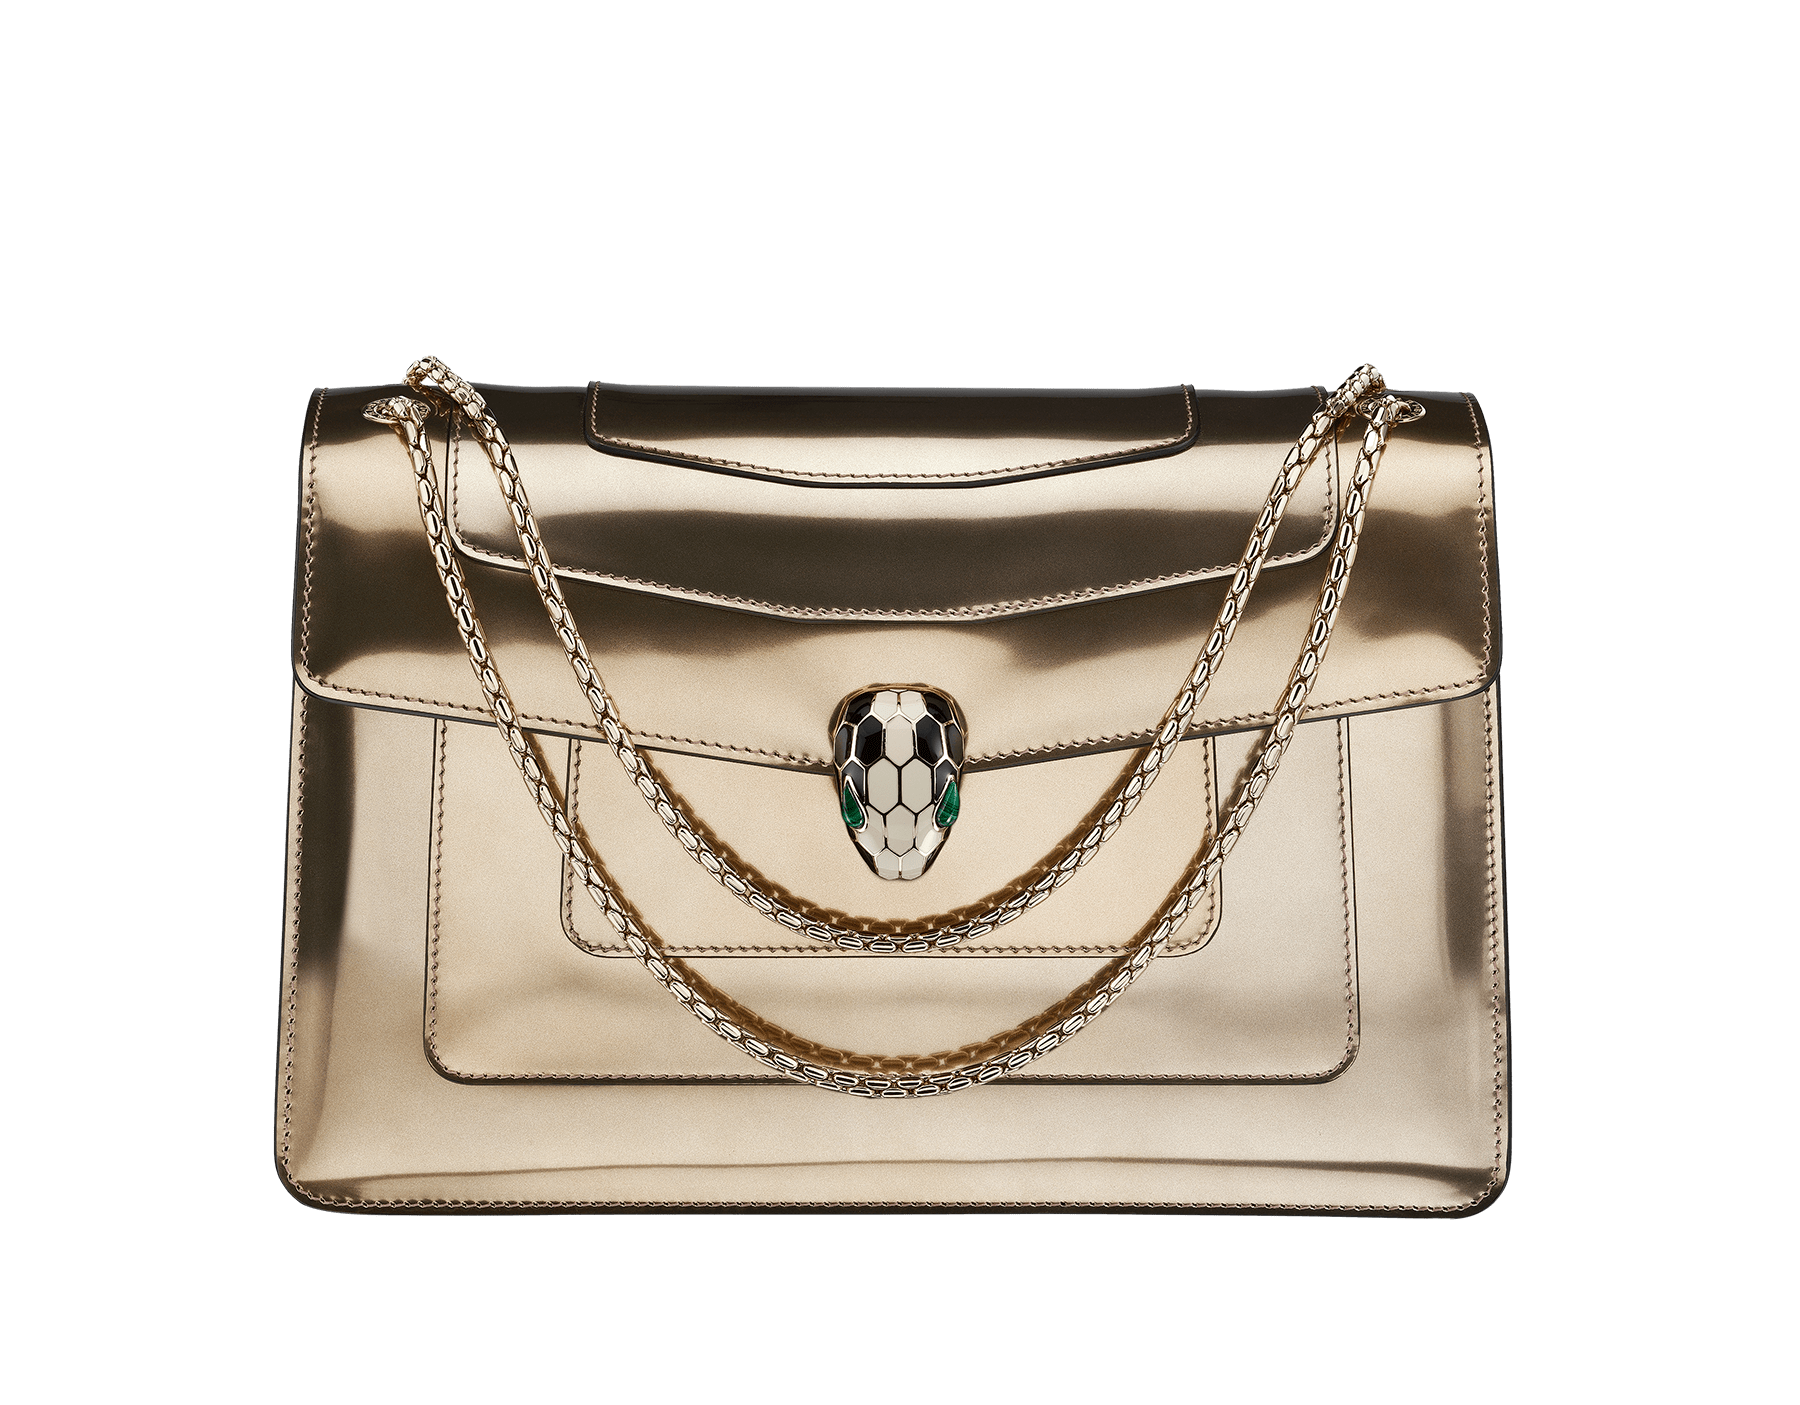 Flap cover bag Serpenti Forever in antique bronze brushed metallic calf leather with brass light gold plated Serpenti head closure in black and white enamel with eyes in green malachite. 39794 image 1